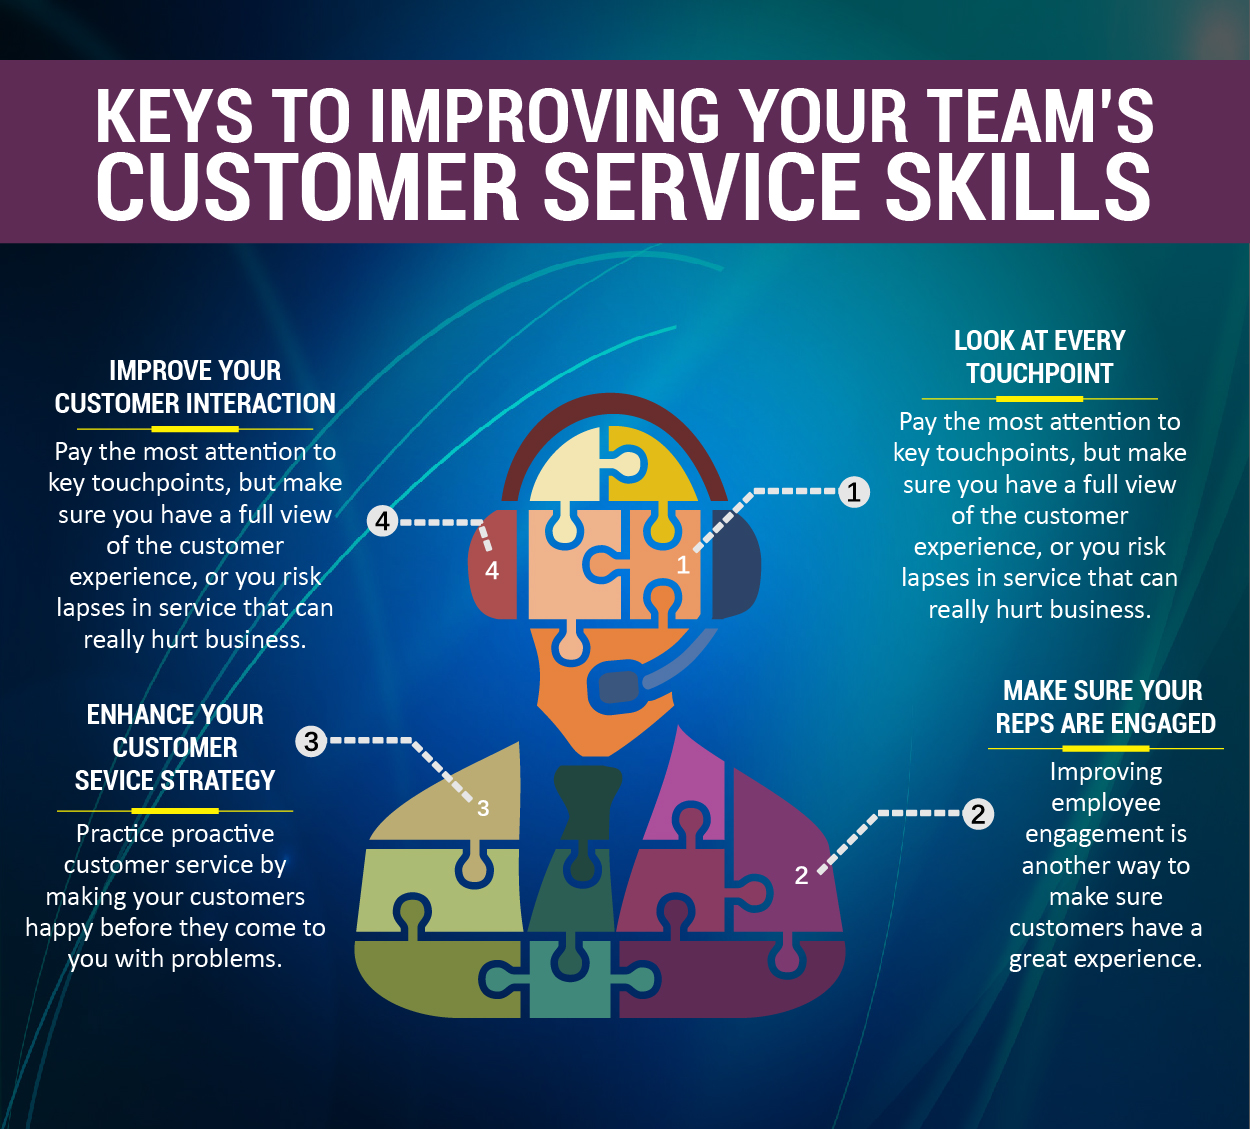 tips to improve your customer service skills visually